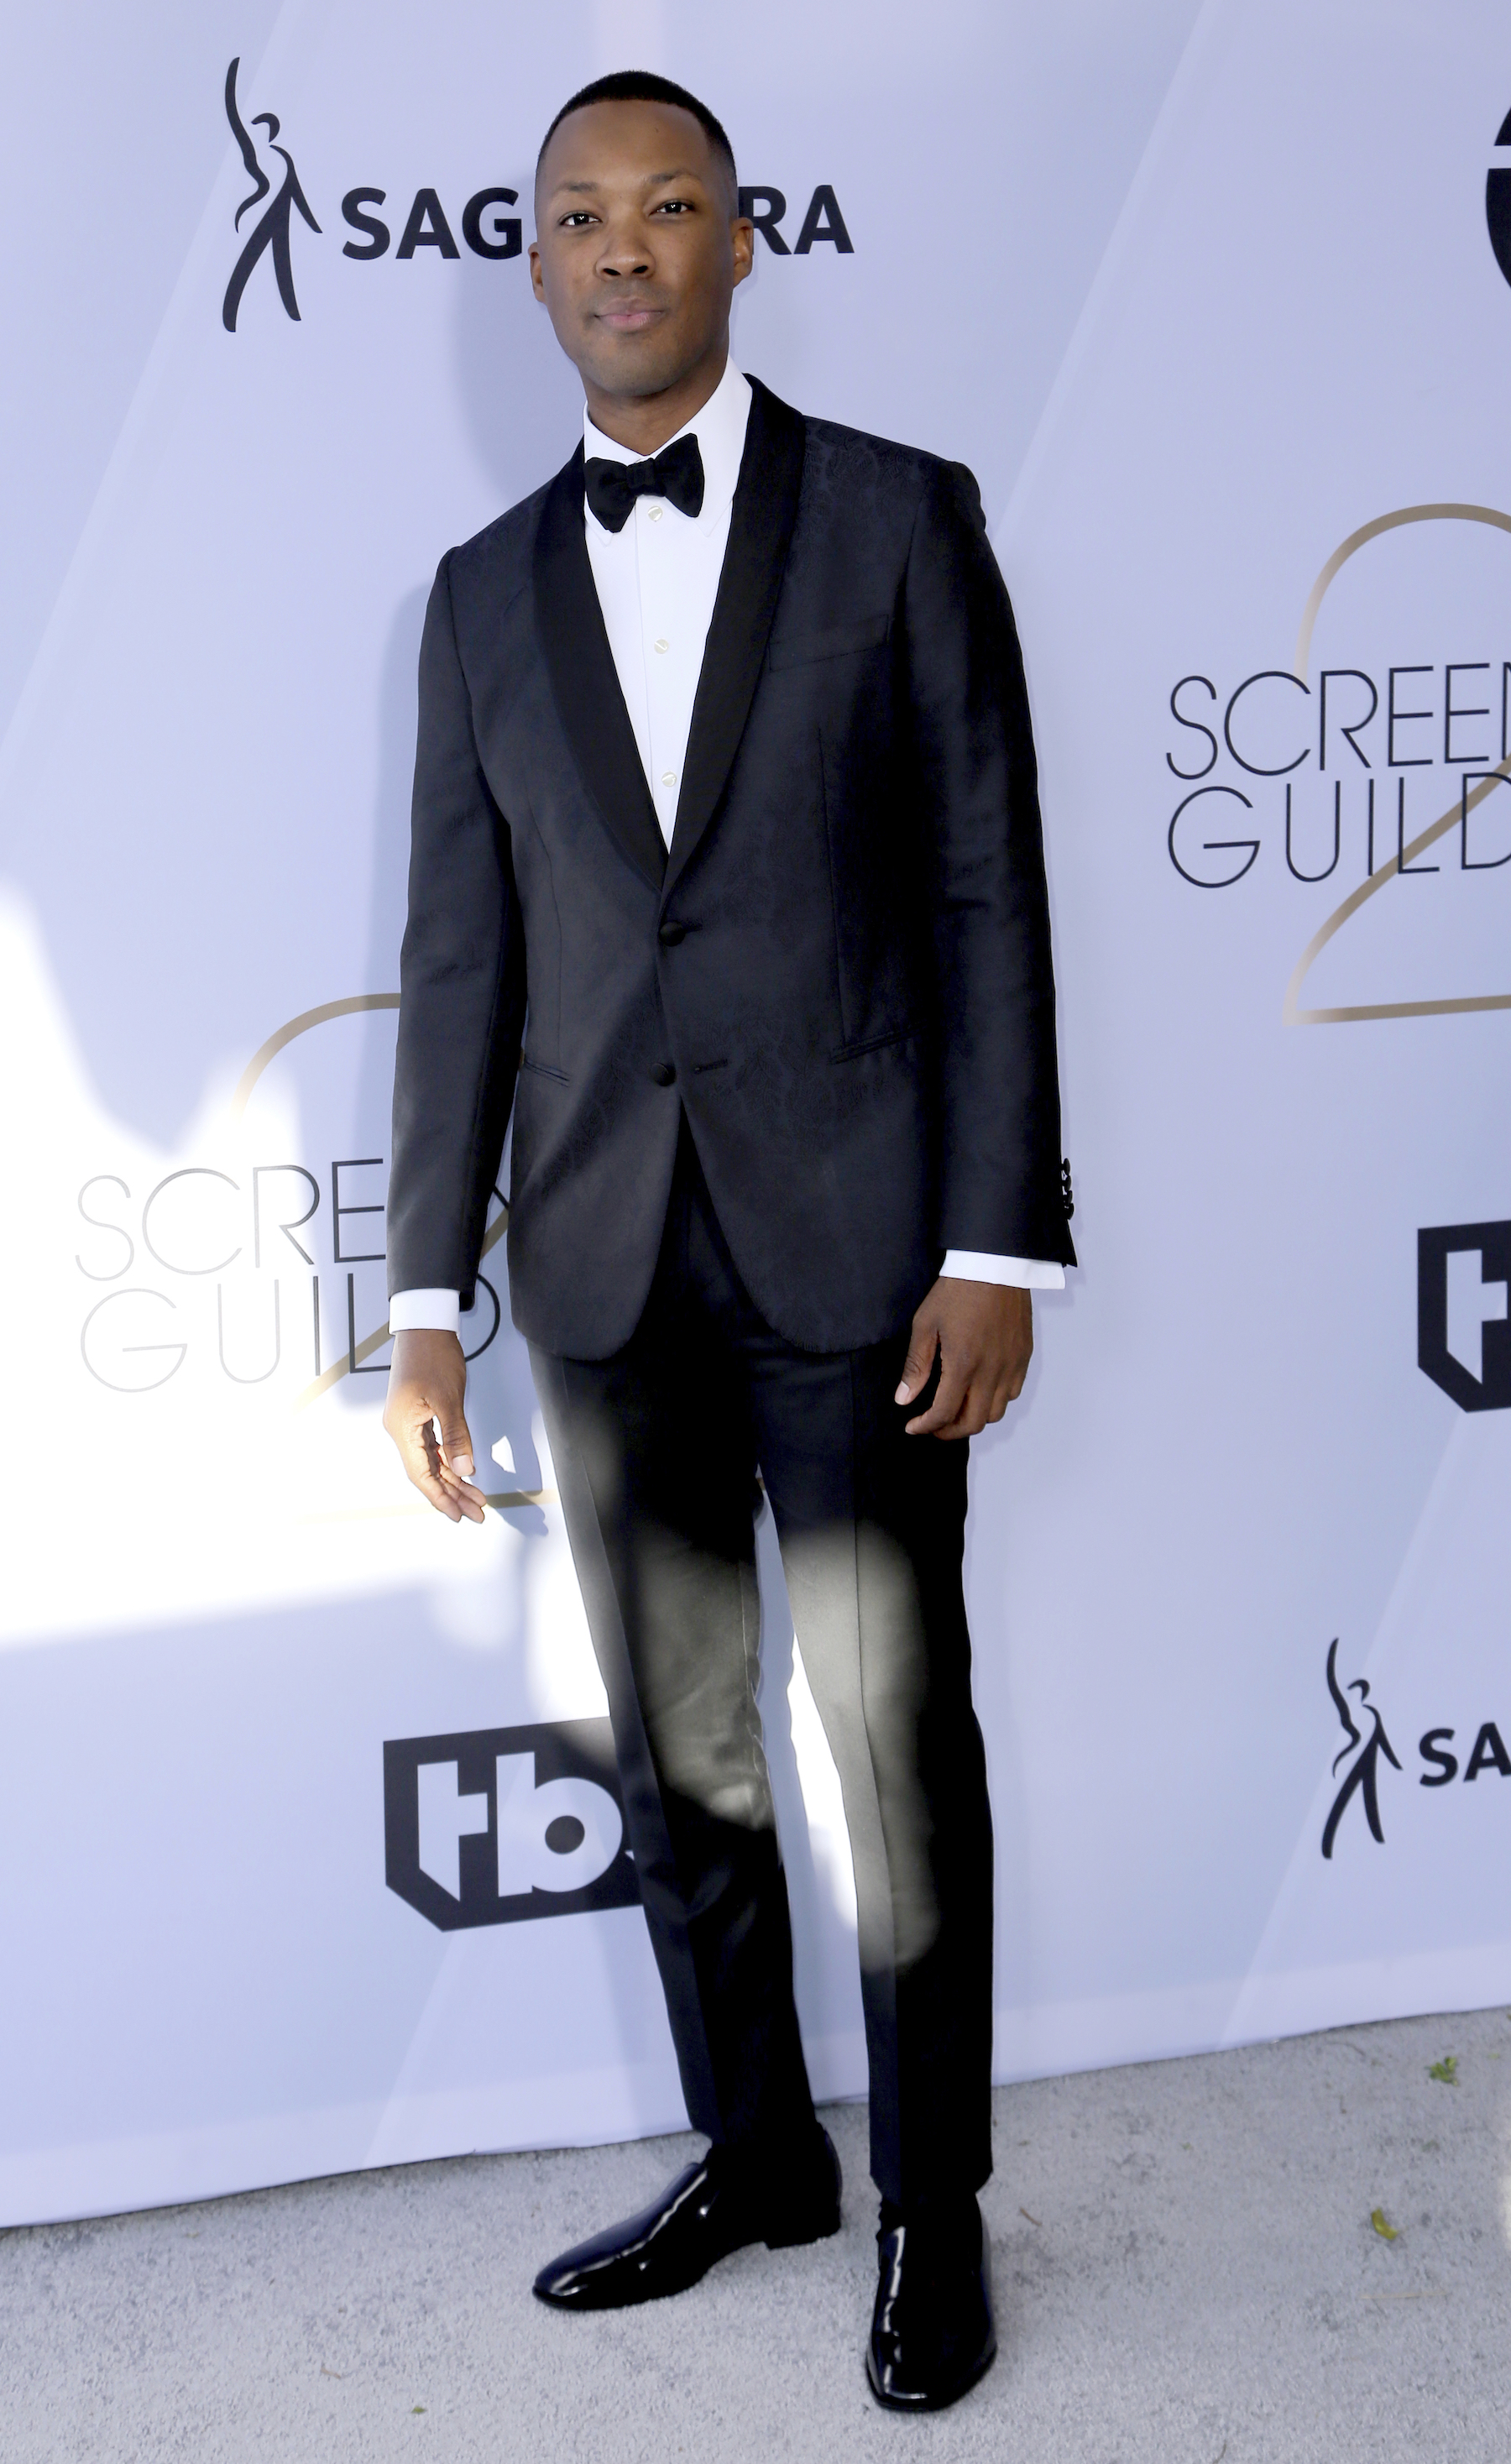 <div class='meta'><div class='origin-logo' data-origin='AP'></div><span class='caption-text' data-credit='Willy Sanjuan/Invision/AP'>Corey Hawkins arrives at the 25th annual Screen Actors Guild Awards at the Shrine Auditorium & Expo Hall on Sunday, Jan. 27, 2019, in Los Angeles.</span></div>